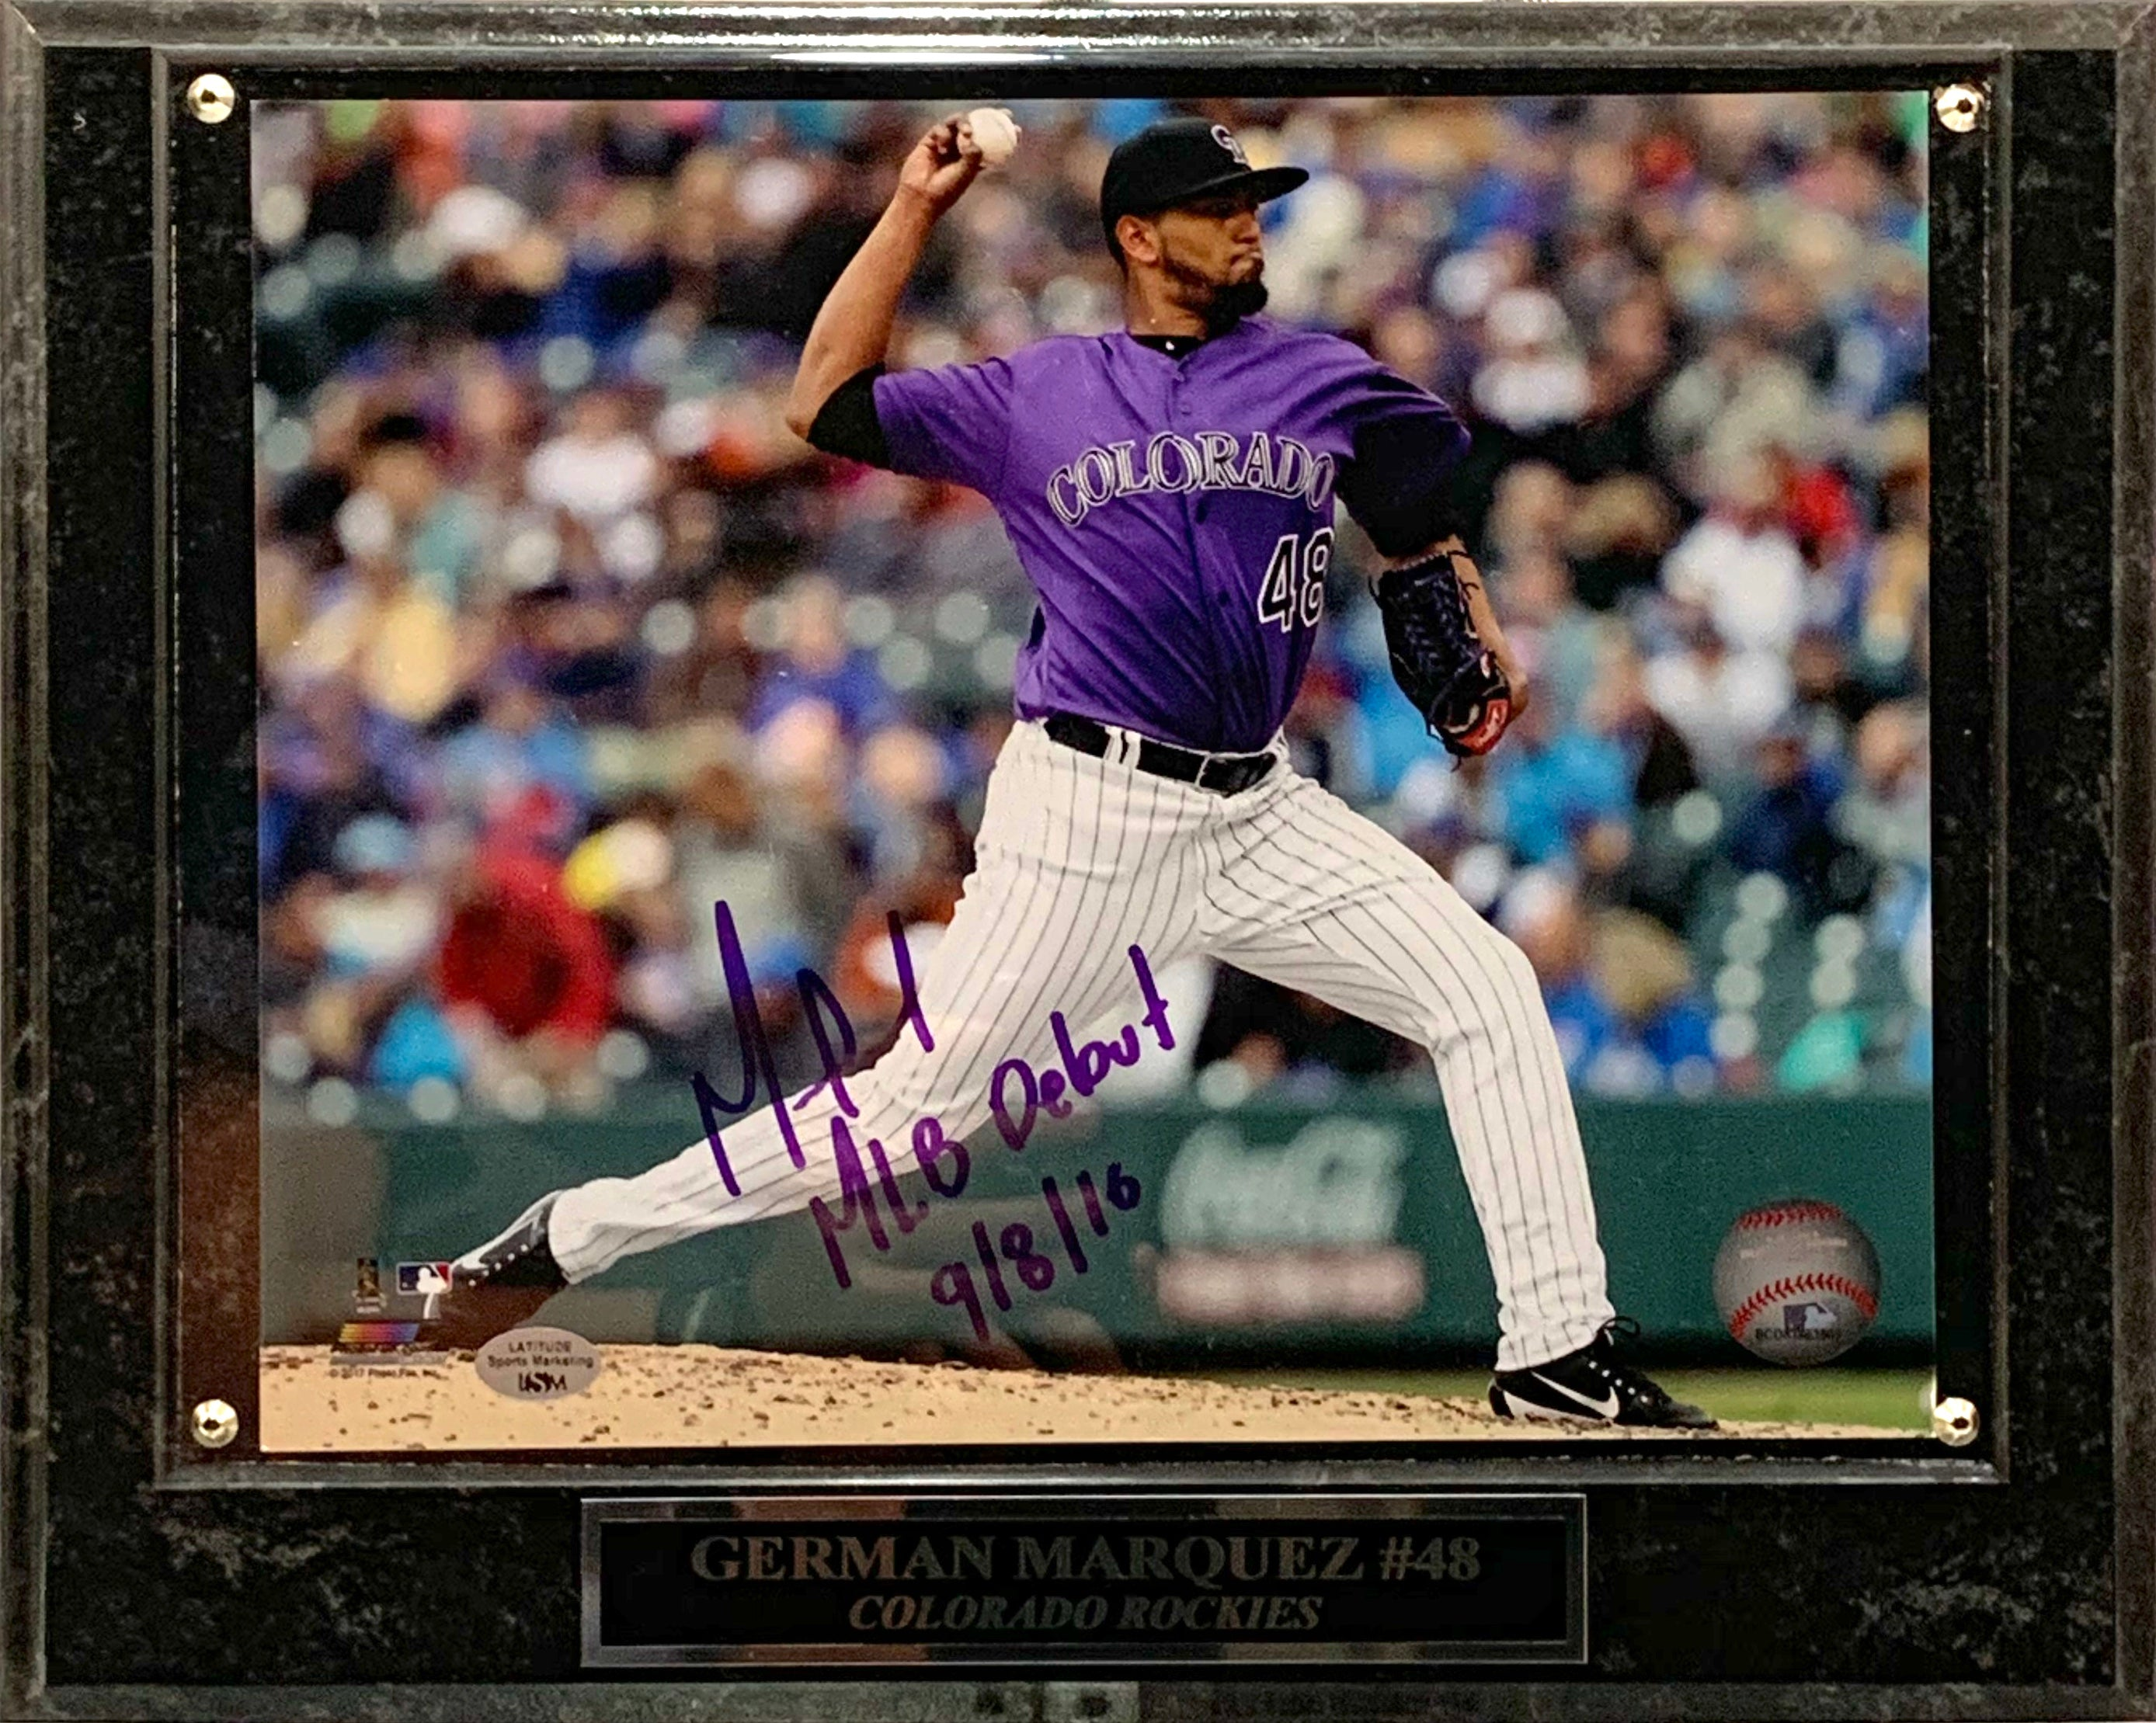 German Marquez Signed MLB Debut 9/8/16 8x10 with Plaque